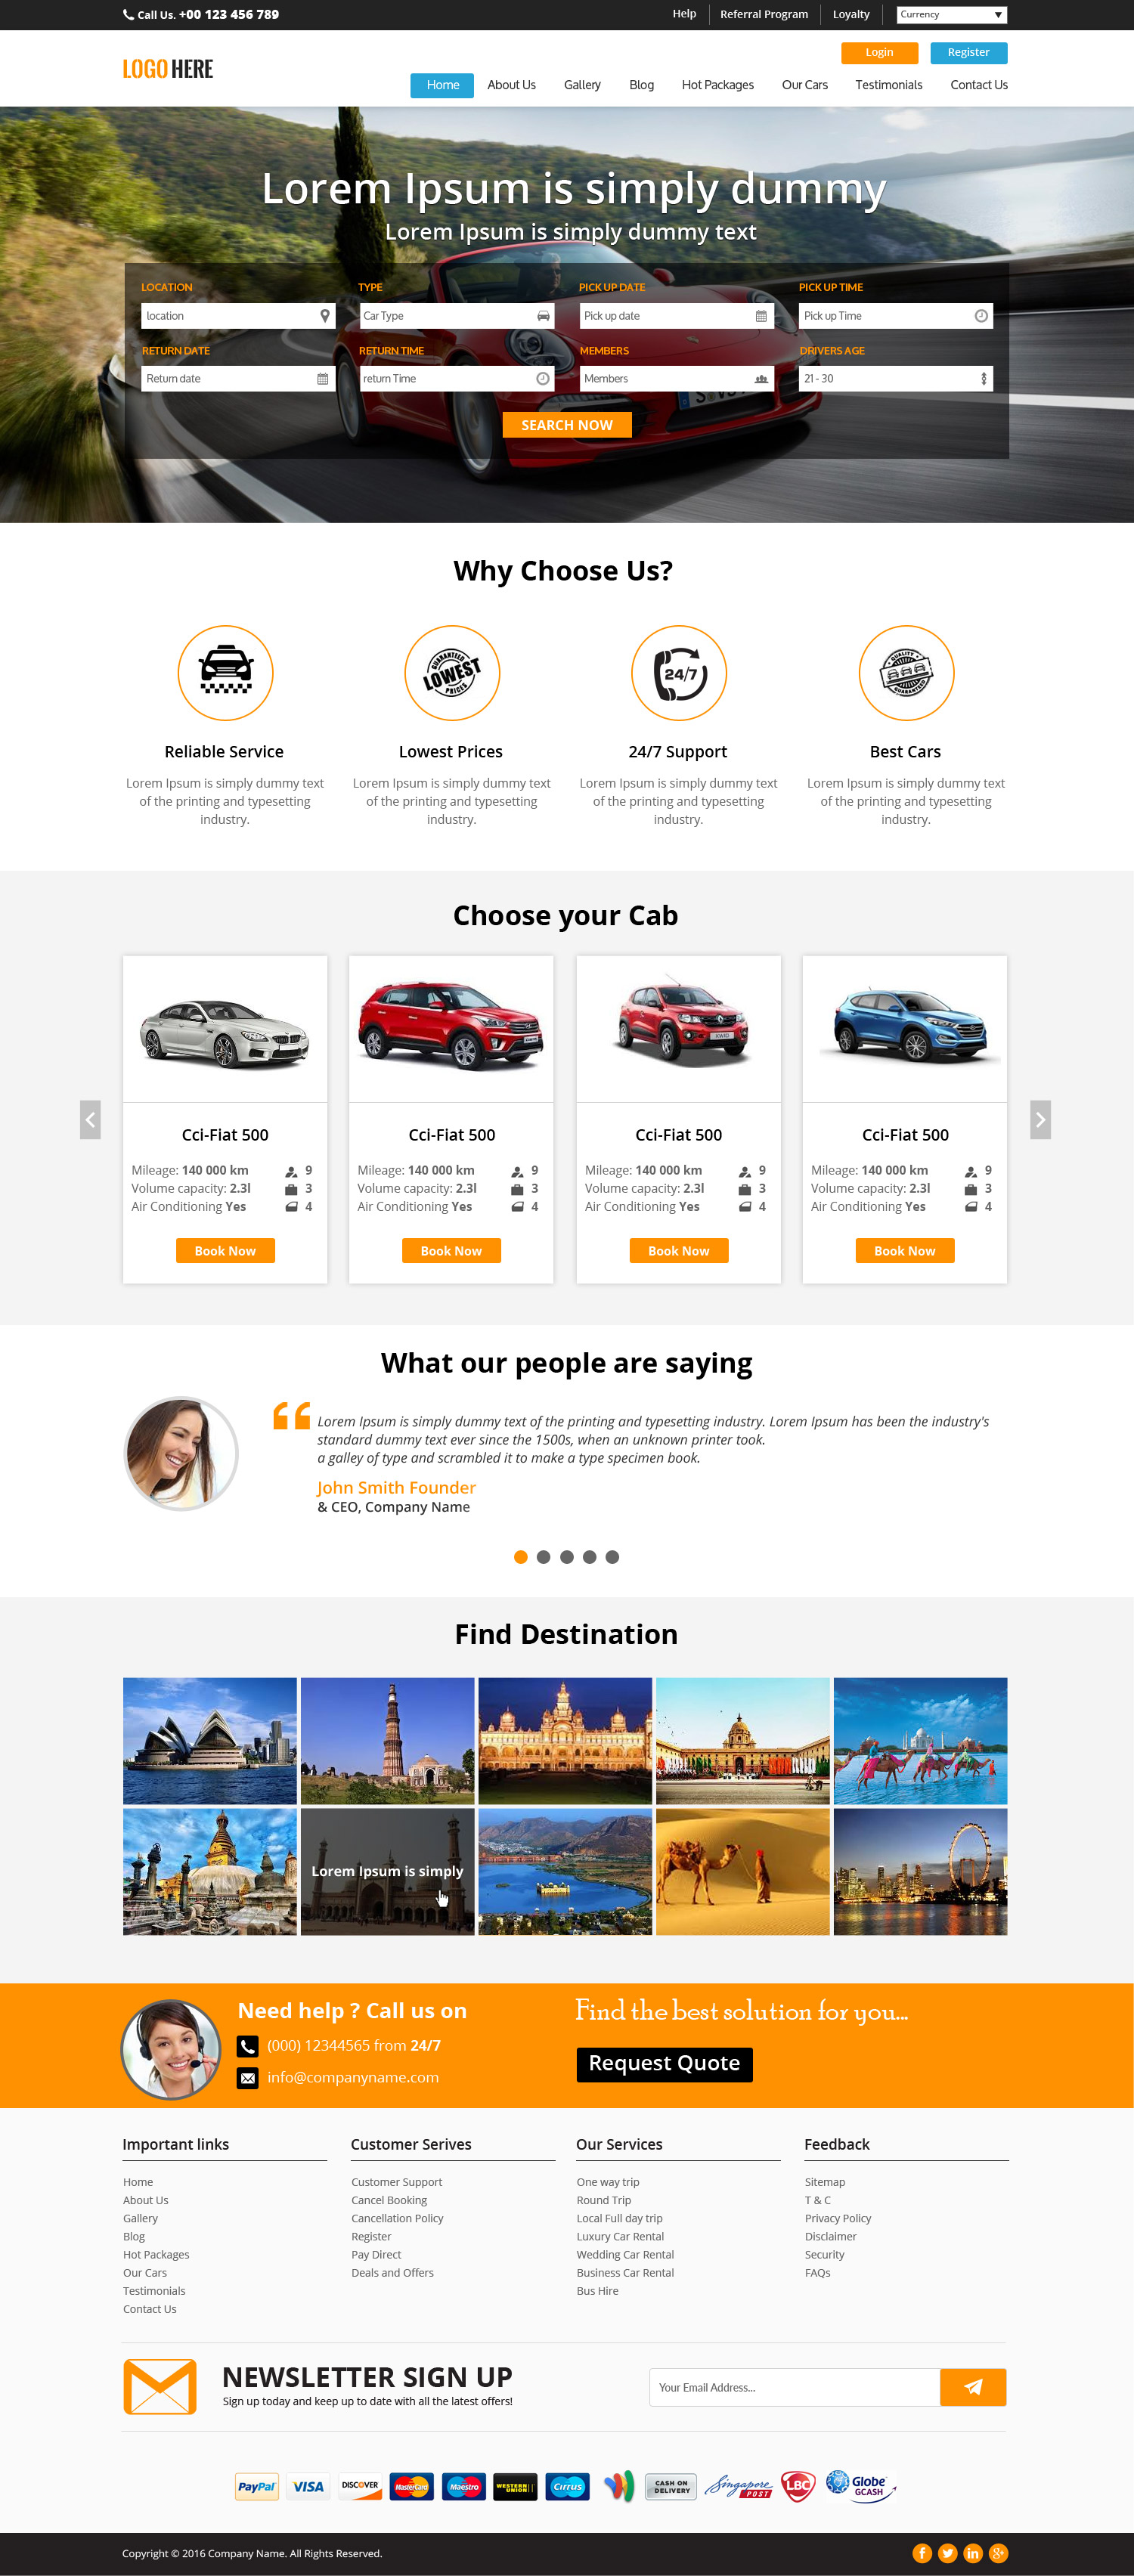 cab booking website template bootstrap grid layout. Black Bedroom Furniture Sets. Home Design Ideas